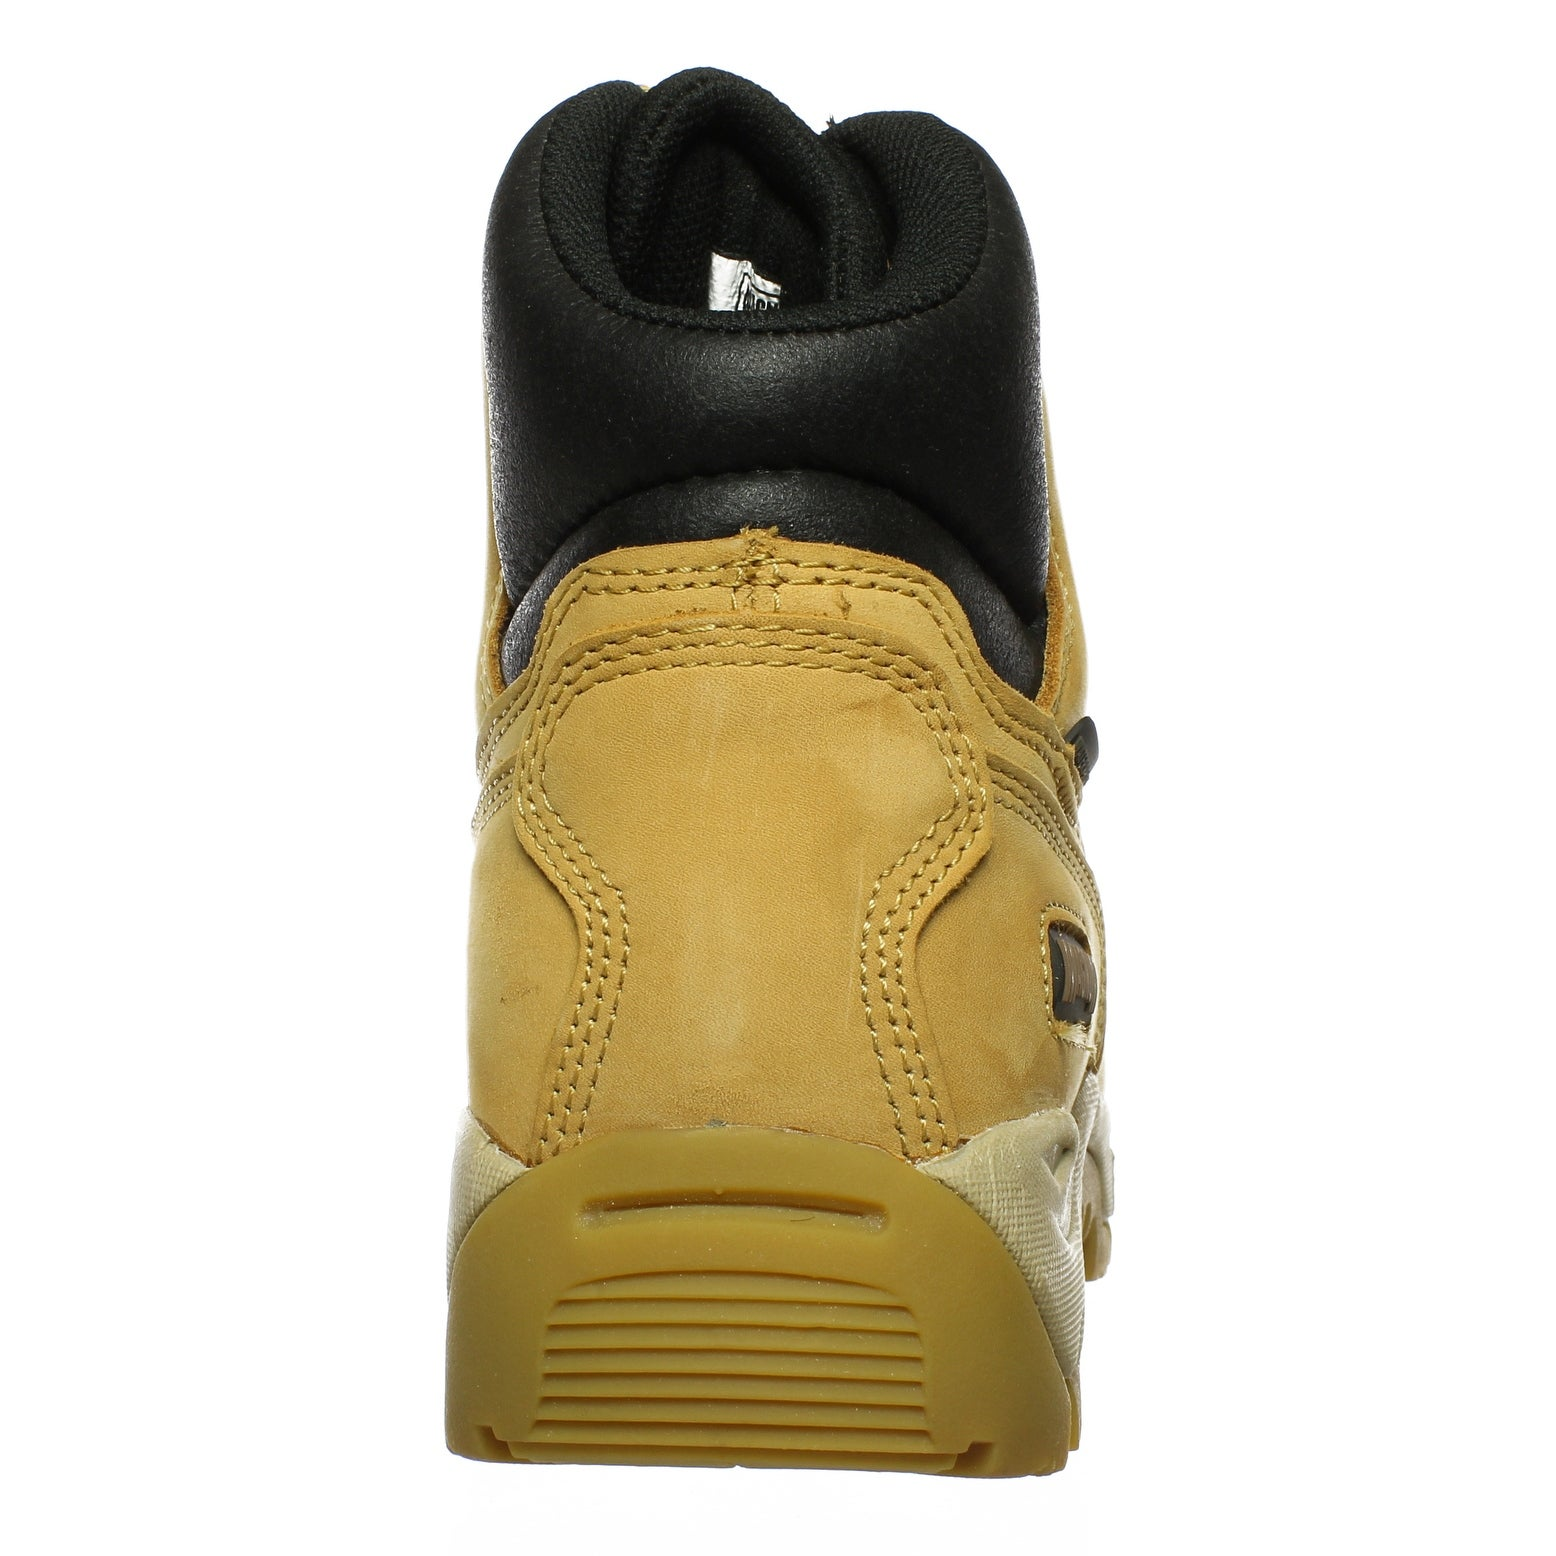 new arrive 0b7a8 a1f54 Magnum Mens Precision Ultra Lite Ii Wheat Work & Safety Boots Size 10.5